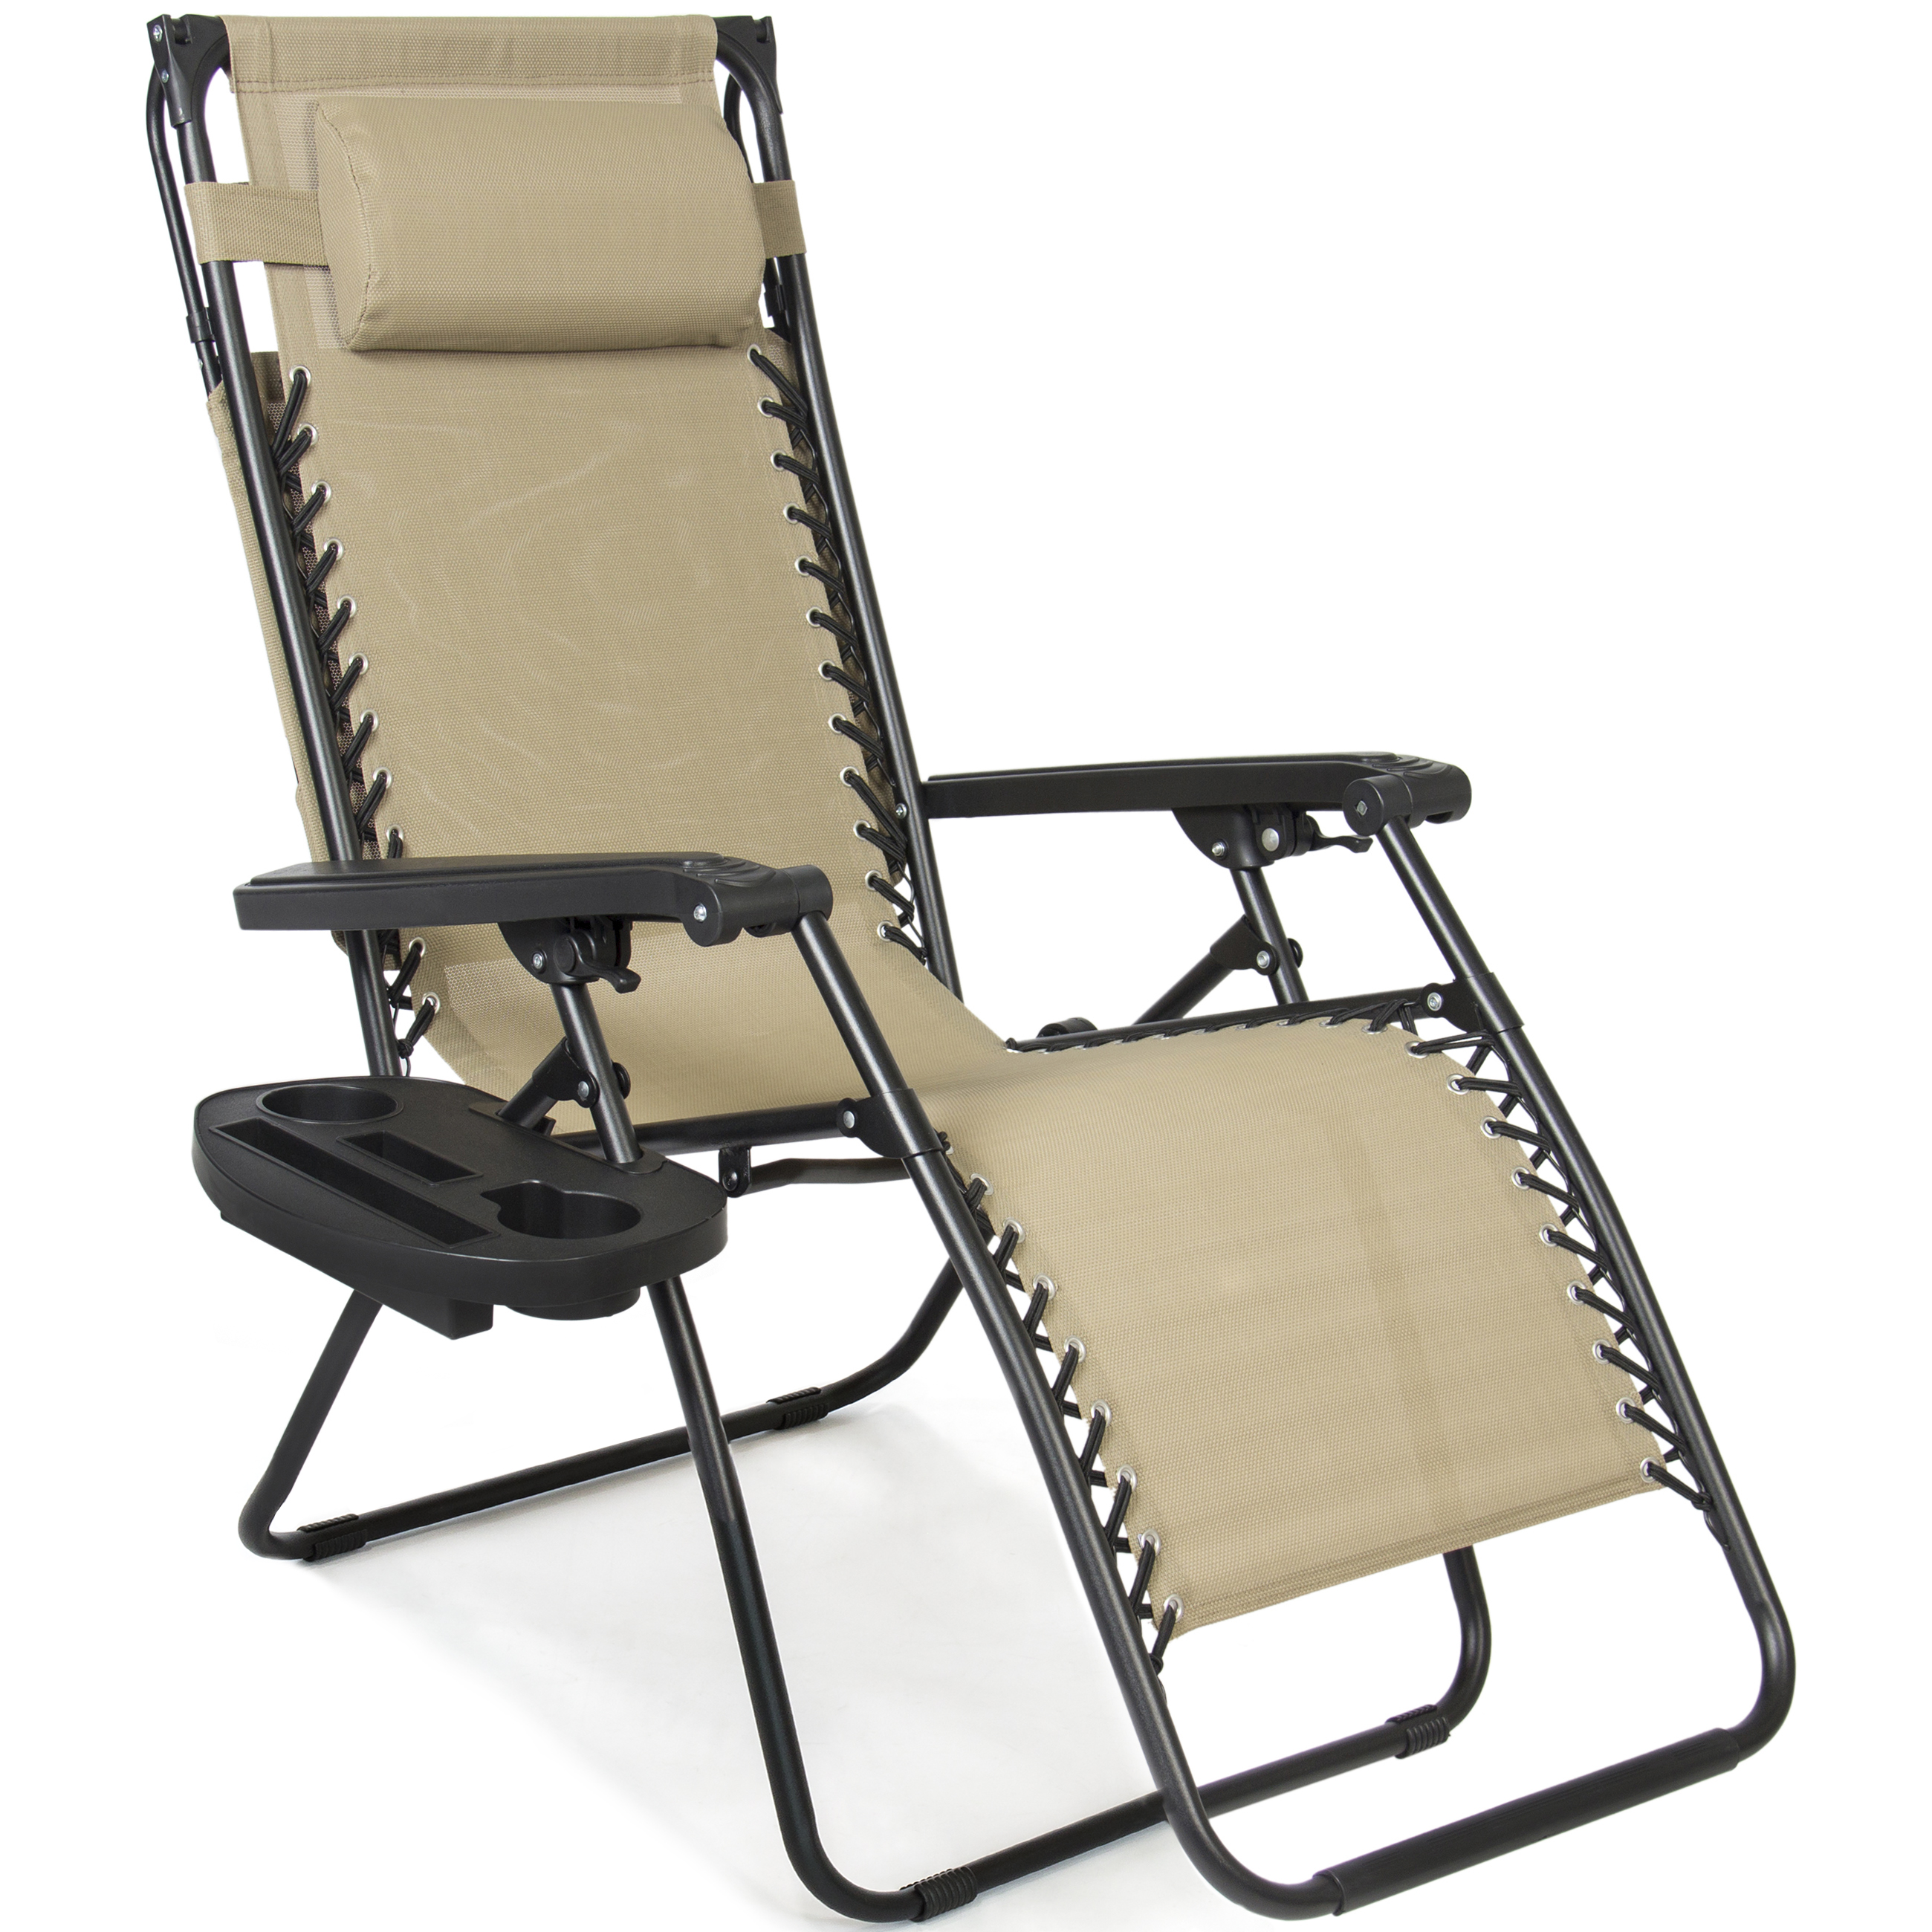 BCP-Folding-Zero-Gravity-Recliner-Lounge-Chair-w-Canopy-Cup-Holder thumbnail 10